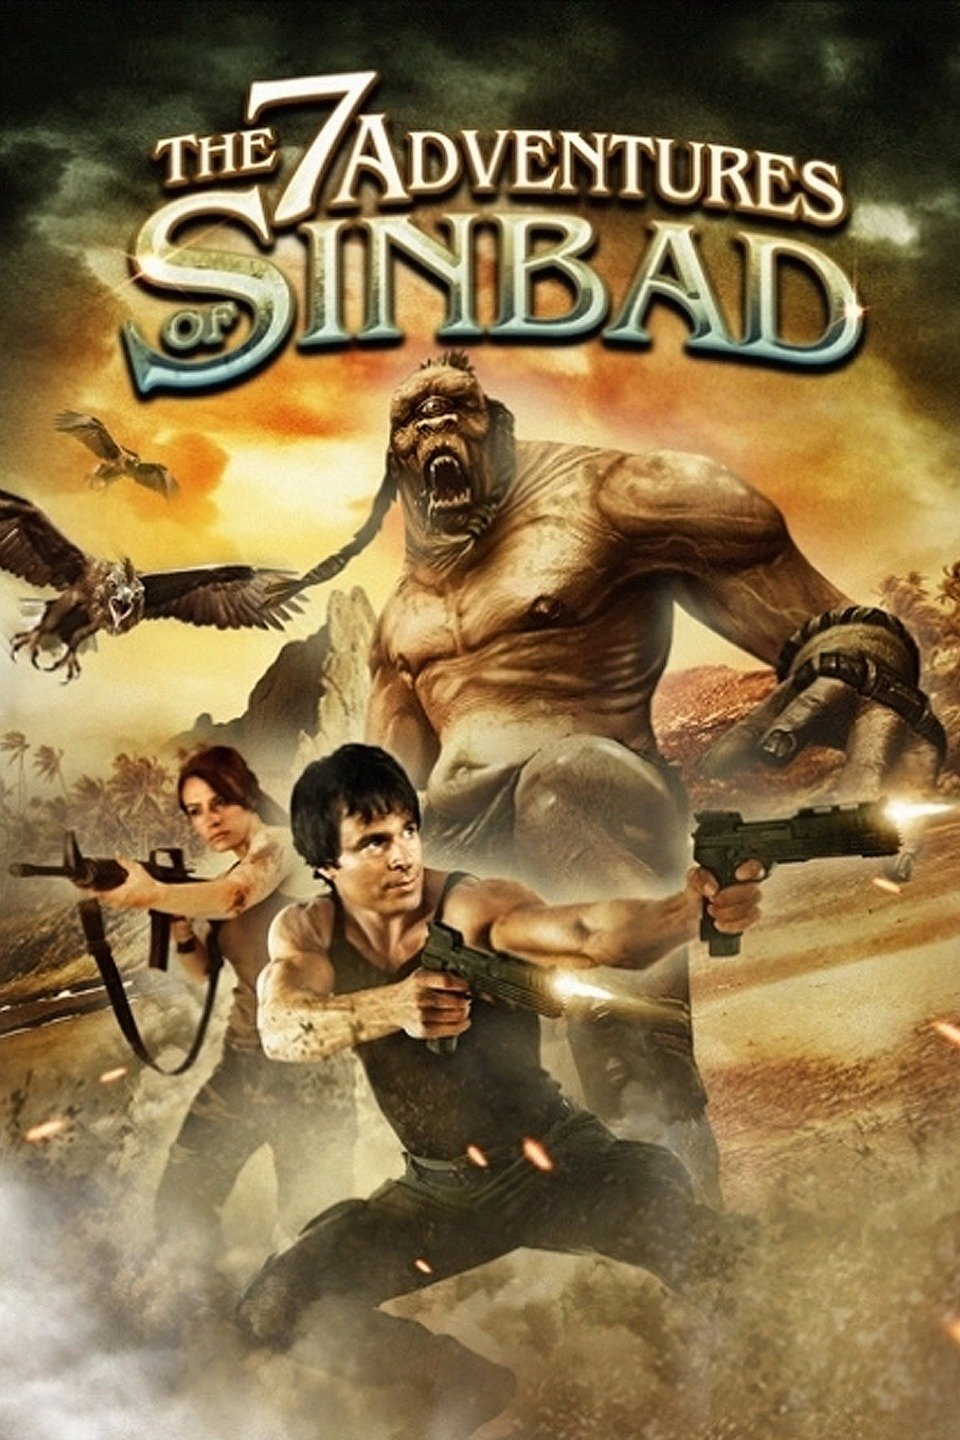 The 7 Adventures of Sinbad-The 7 Adventures of Sinbad